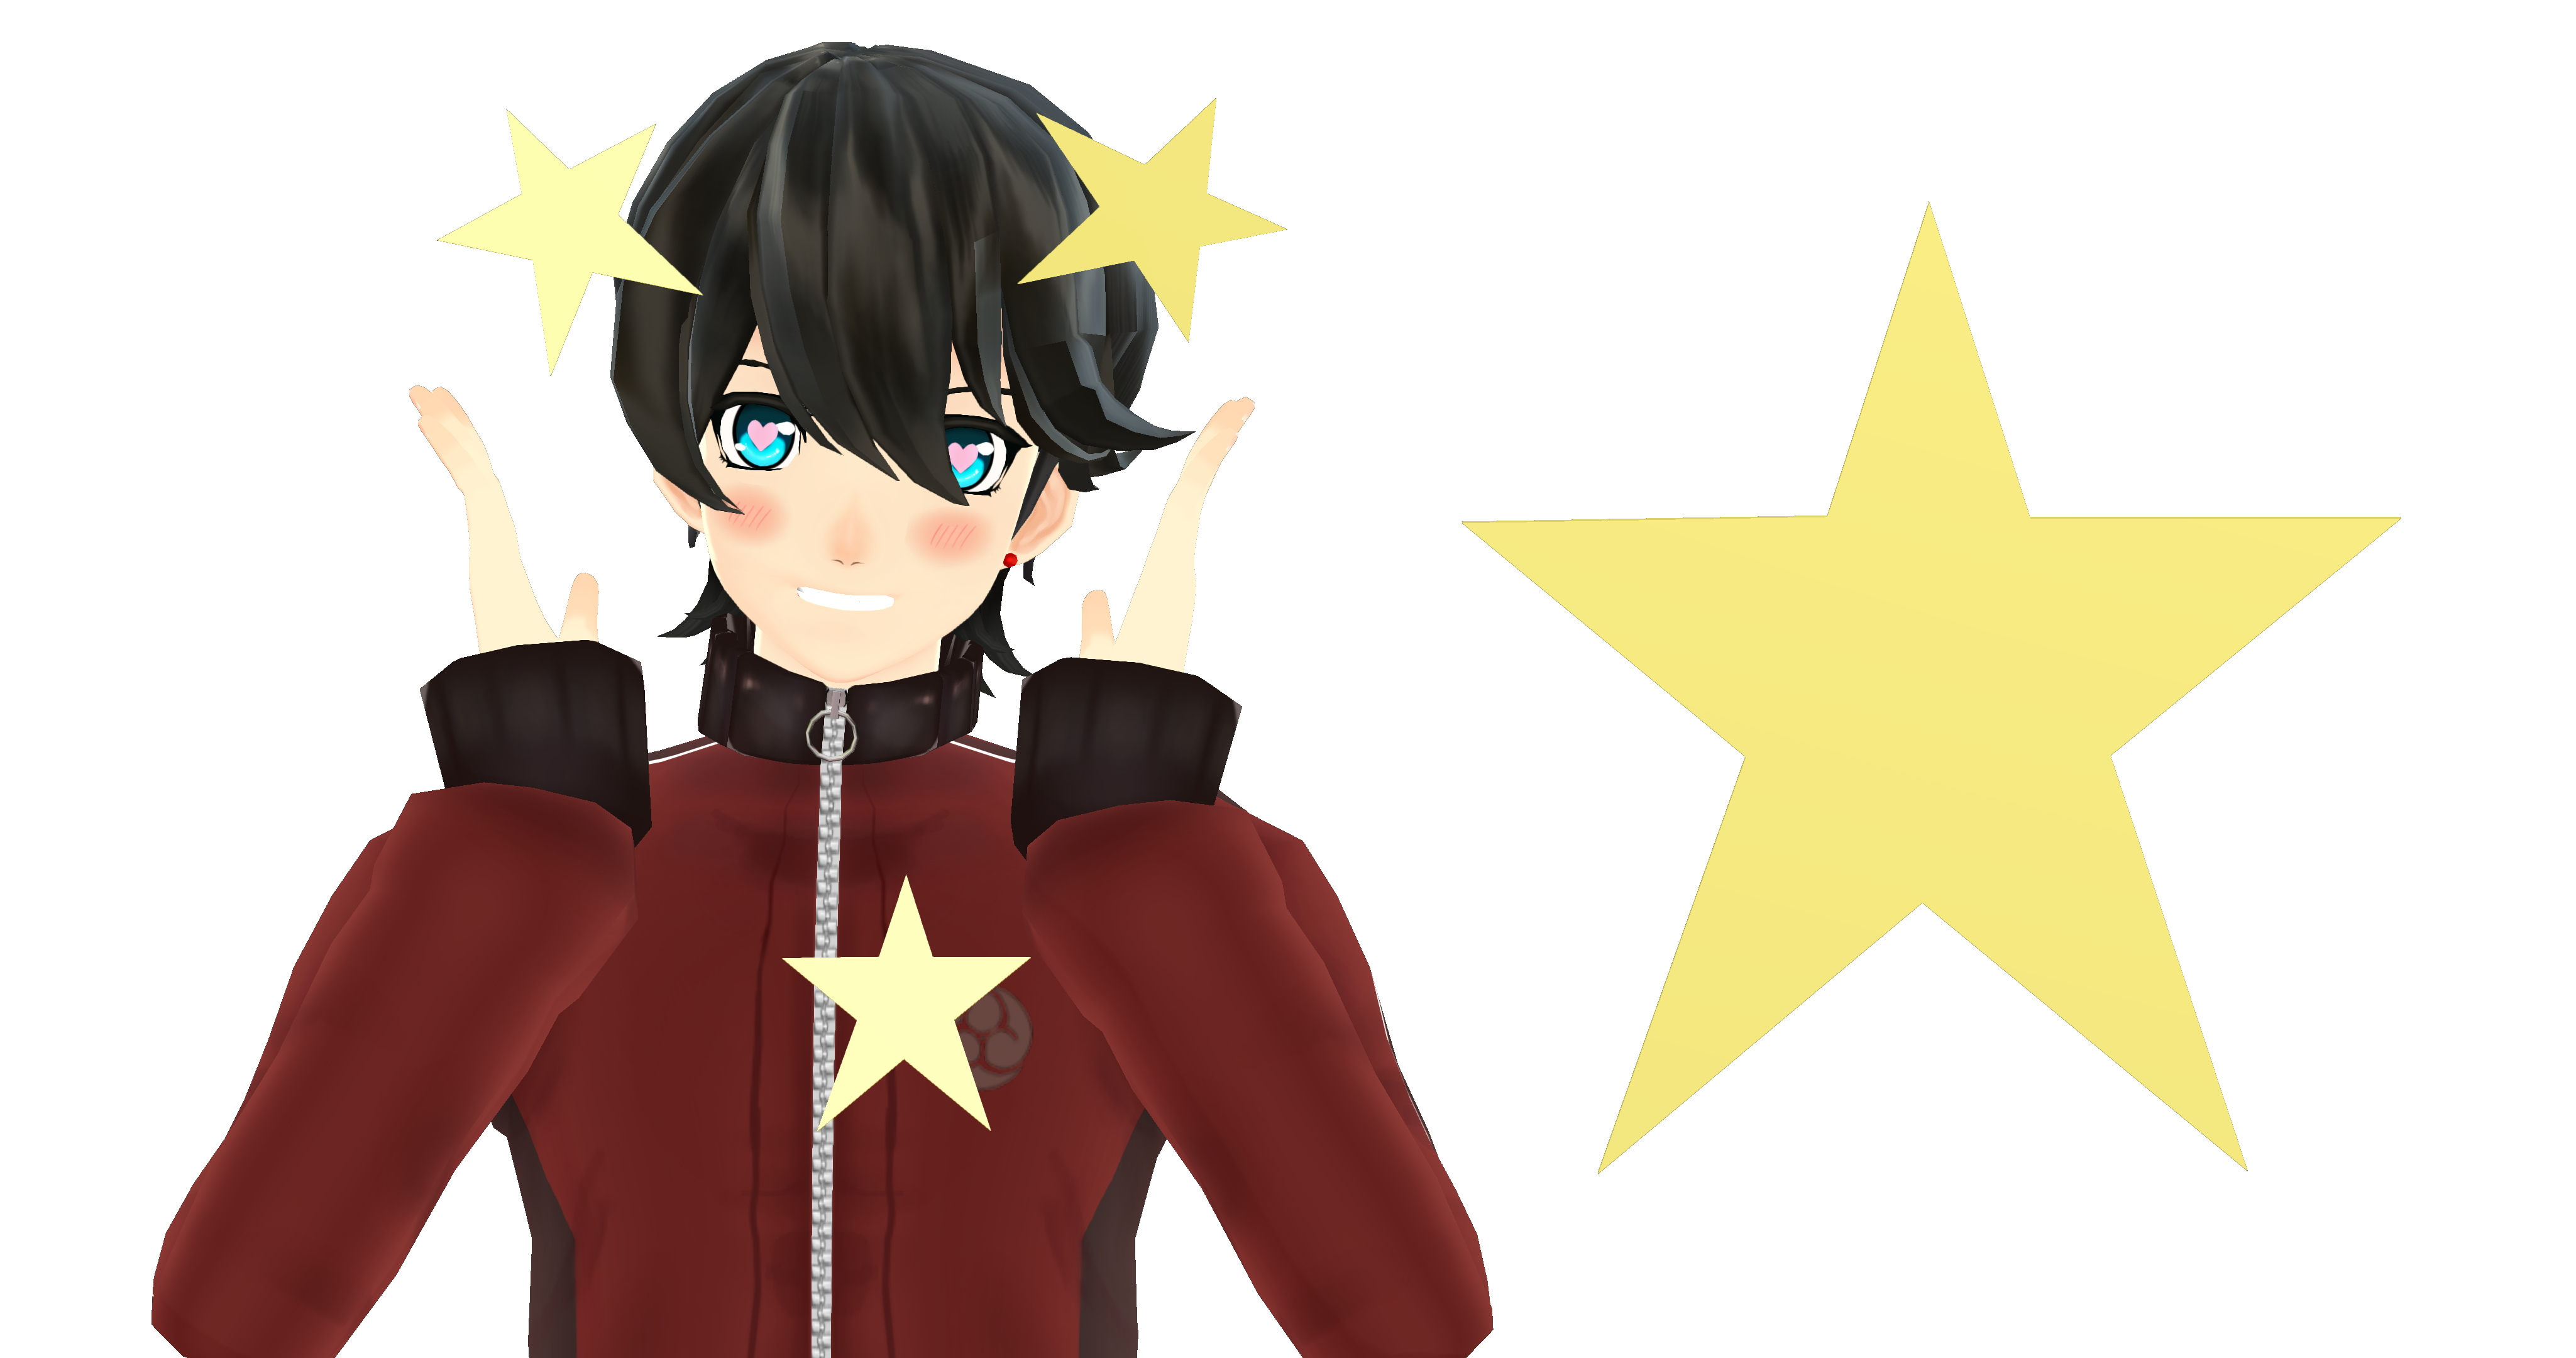 MMD Accessory Download: GOOD NOODLE STAR by RollingHannah on